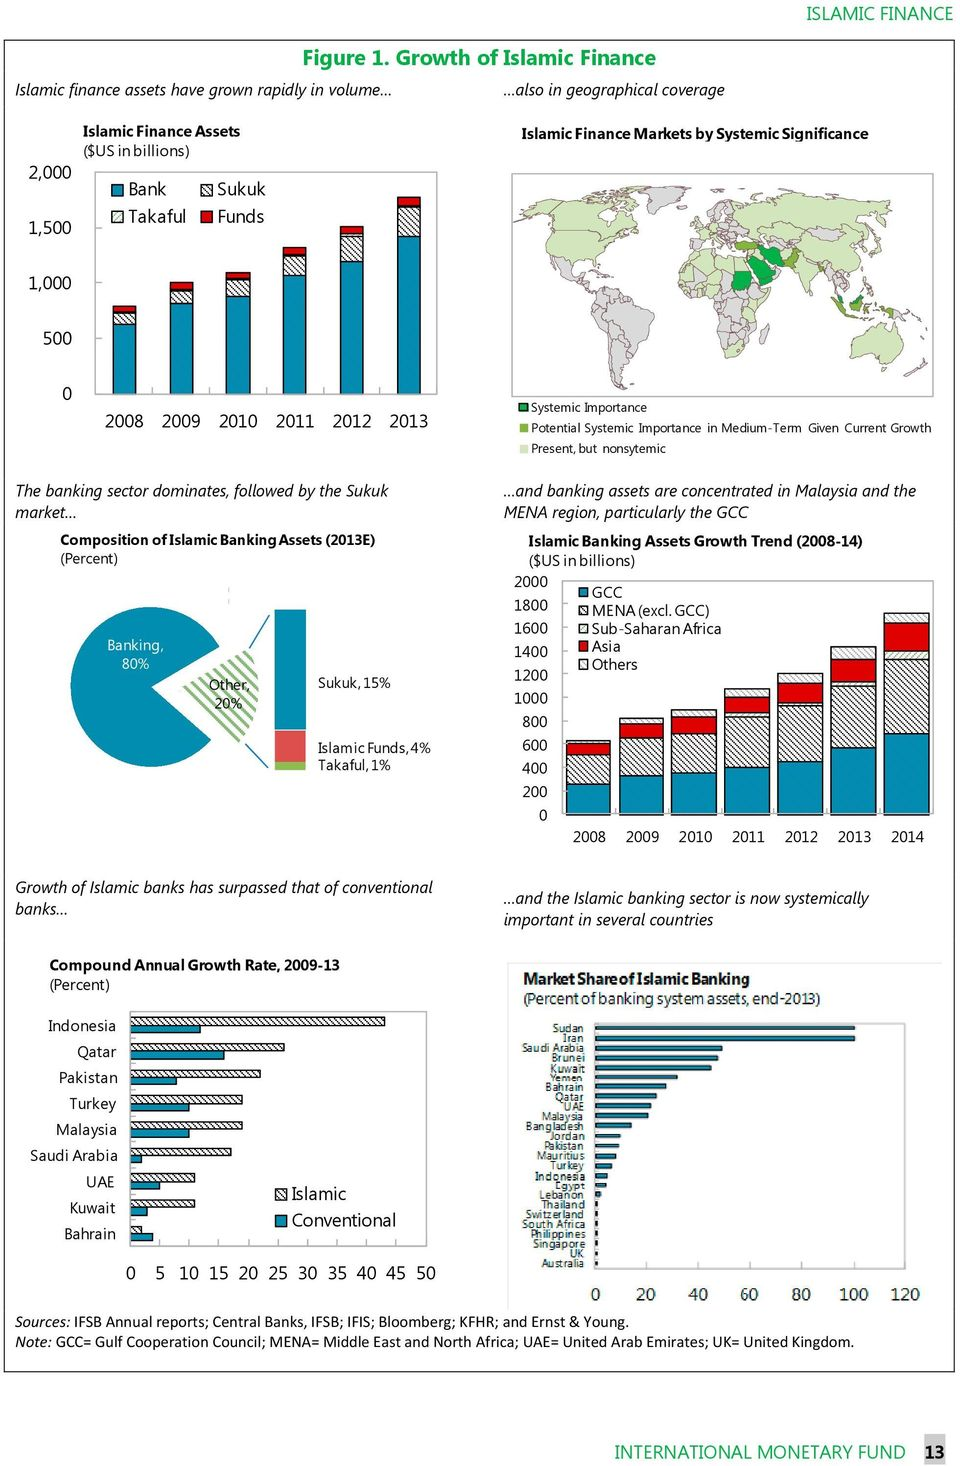 2009 2010 2011 2012 2013 Systemic Importance Potential Systemic Importance in Medium-Term Given Current Growth Present, but nonsytemic The banking sector dominates, followed by the Sukuk market